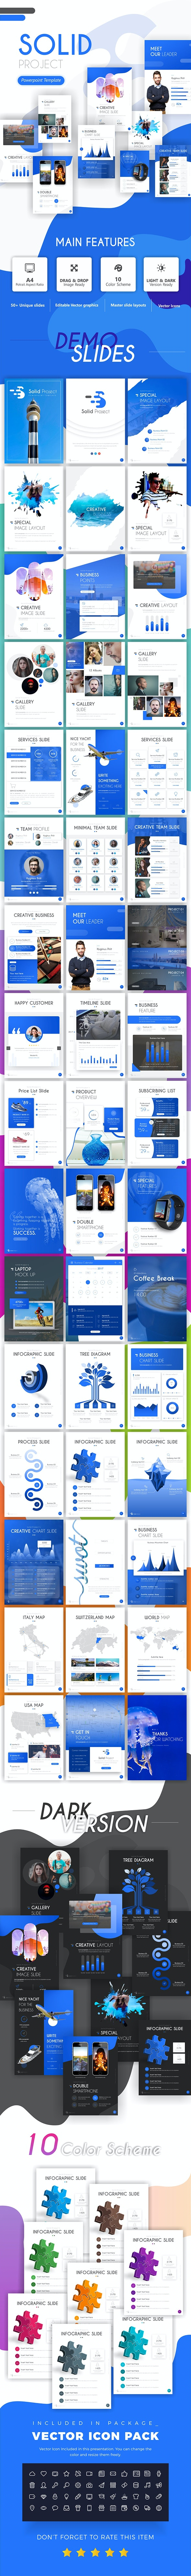 Solid Project Creative Portrait PowerPoint Template - PowerPoint Templates Presentation Templates